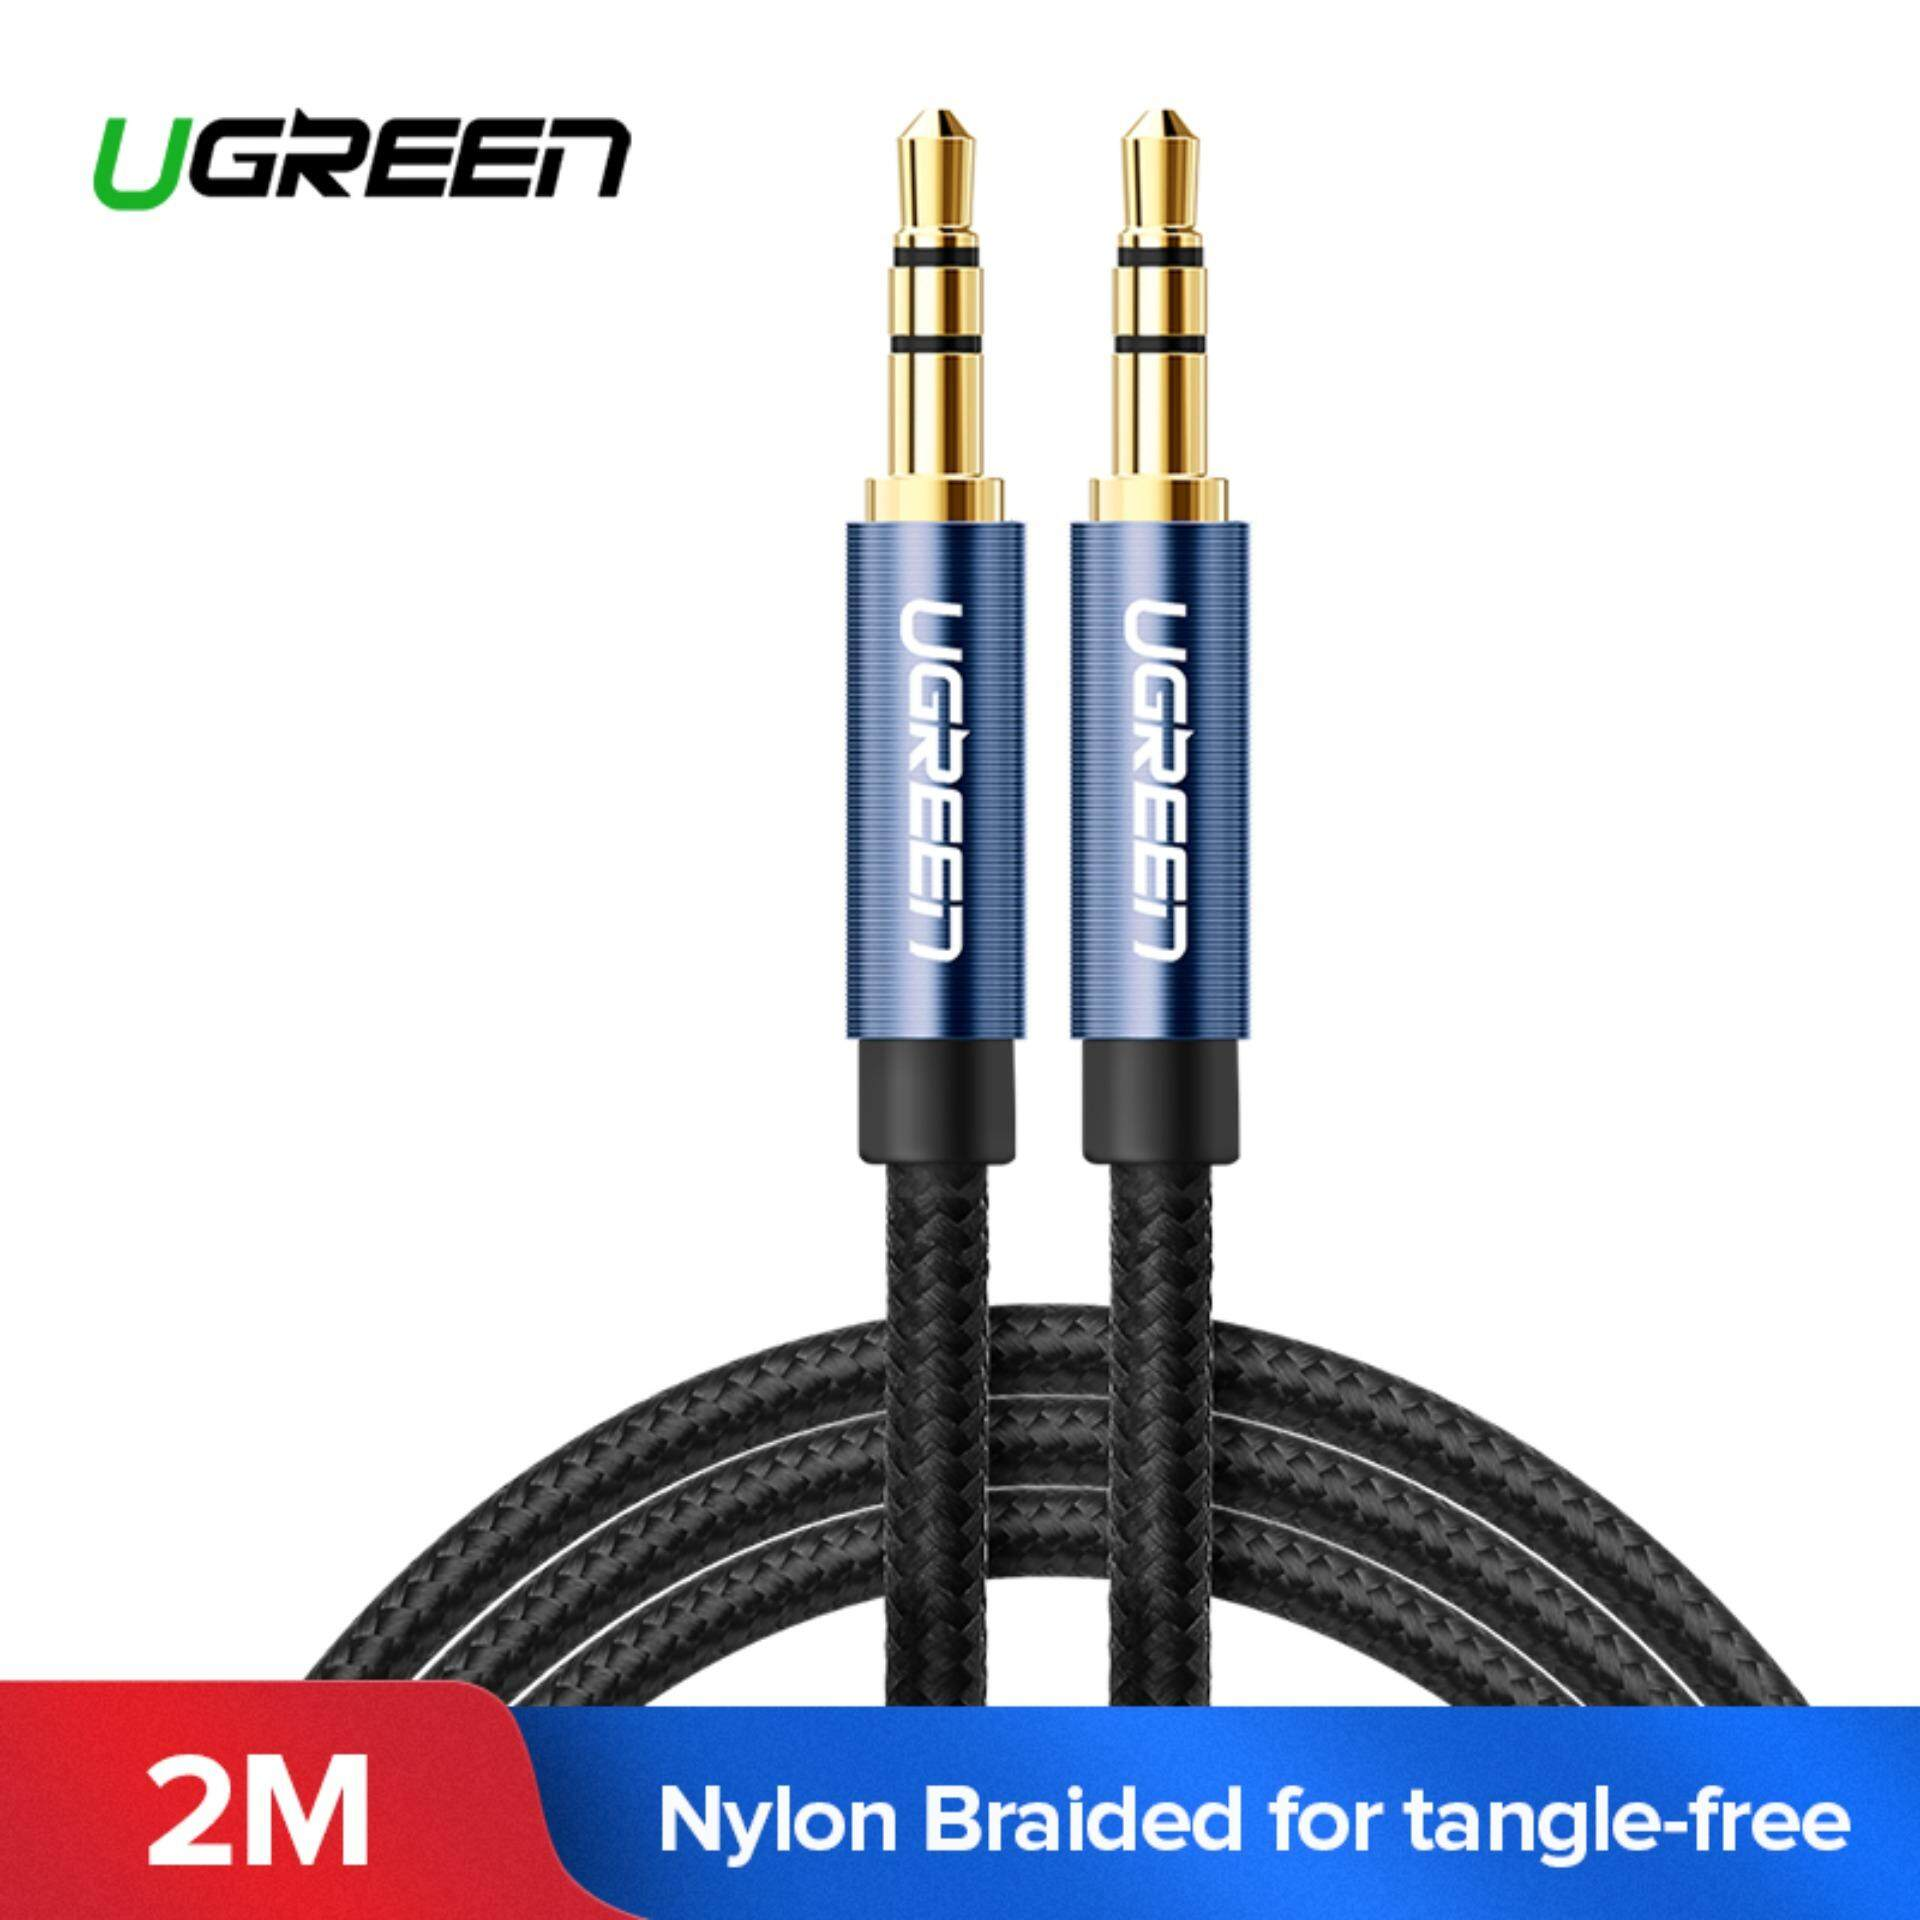 UGREEN 2 Meter 3.5mm Nylon Bradied Audio Cable Compatible for iPhone, iPad or Smartphones